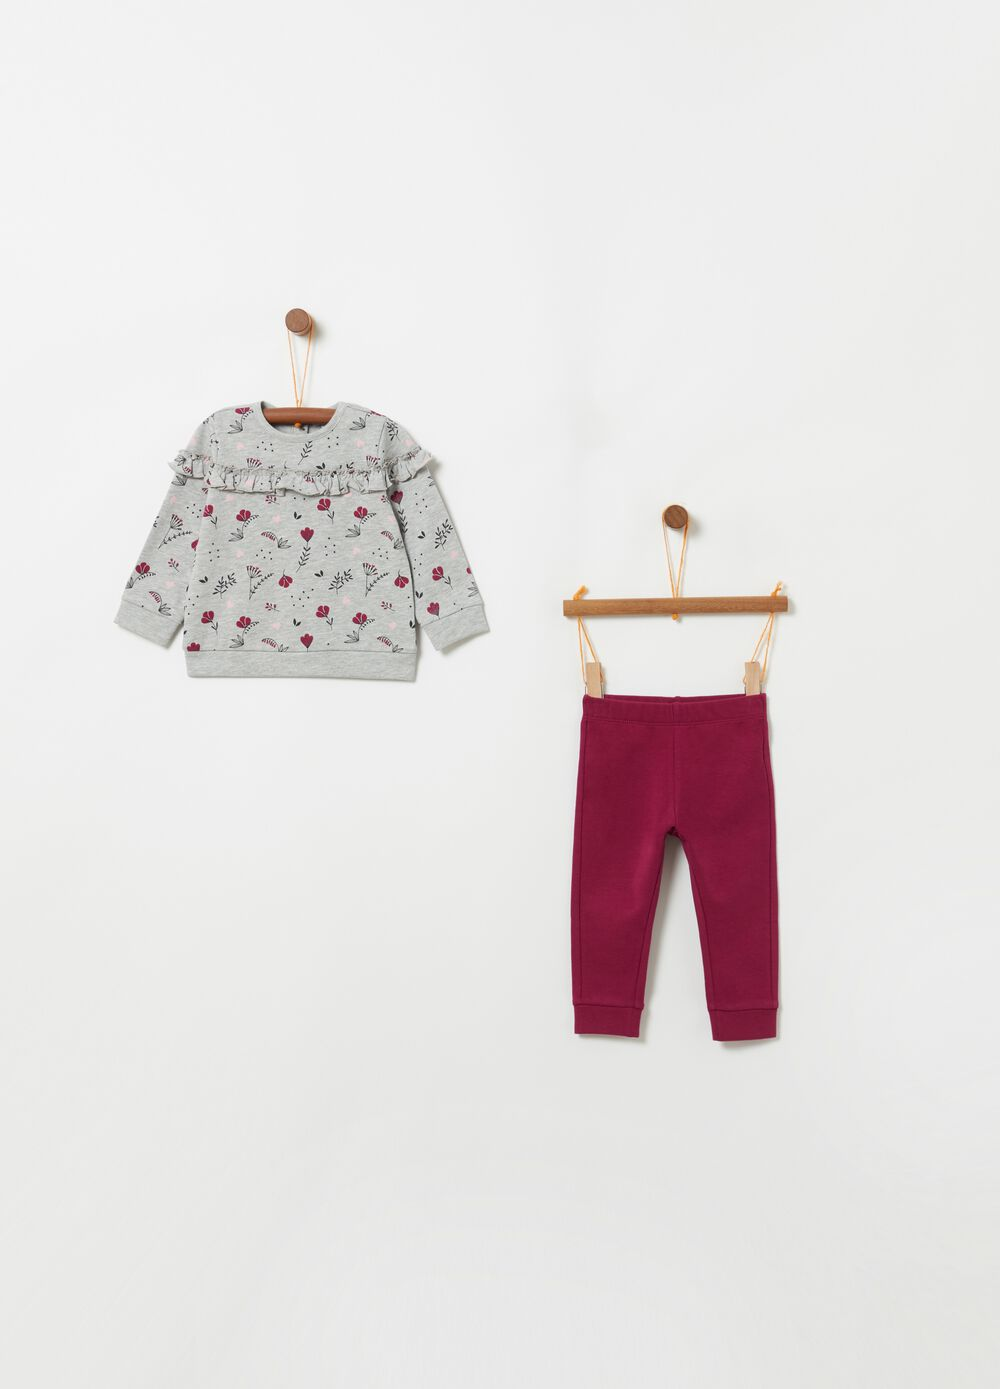 Patterned jogging set with T-shirt and trousers